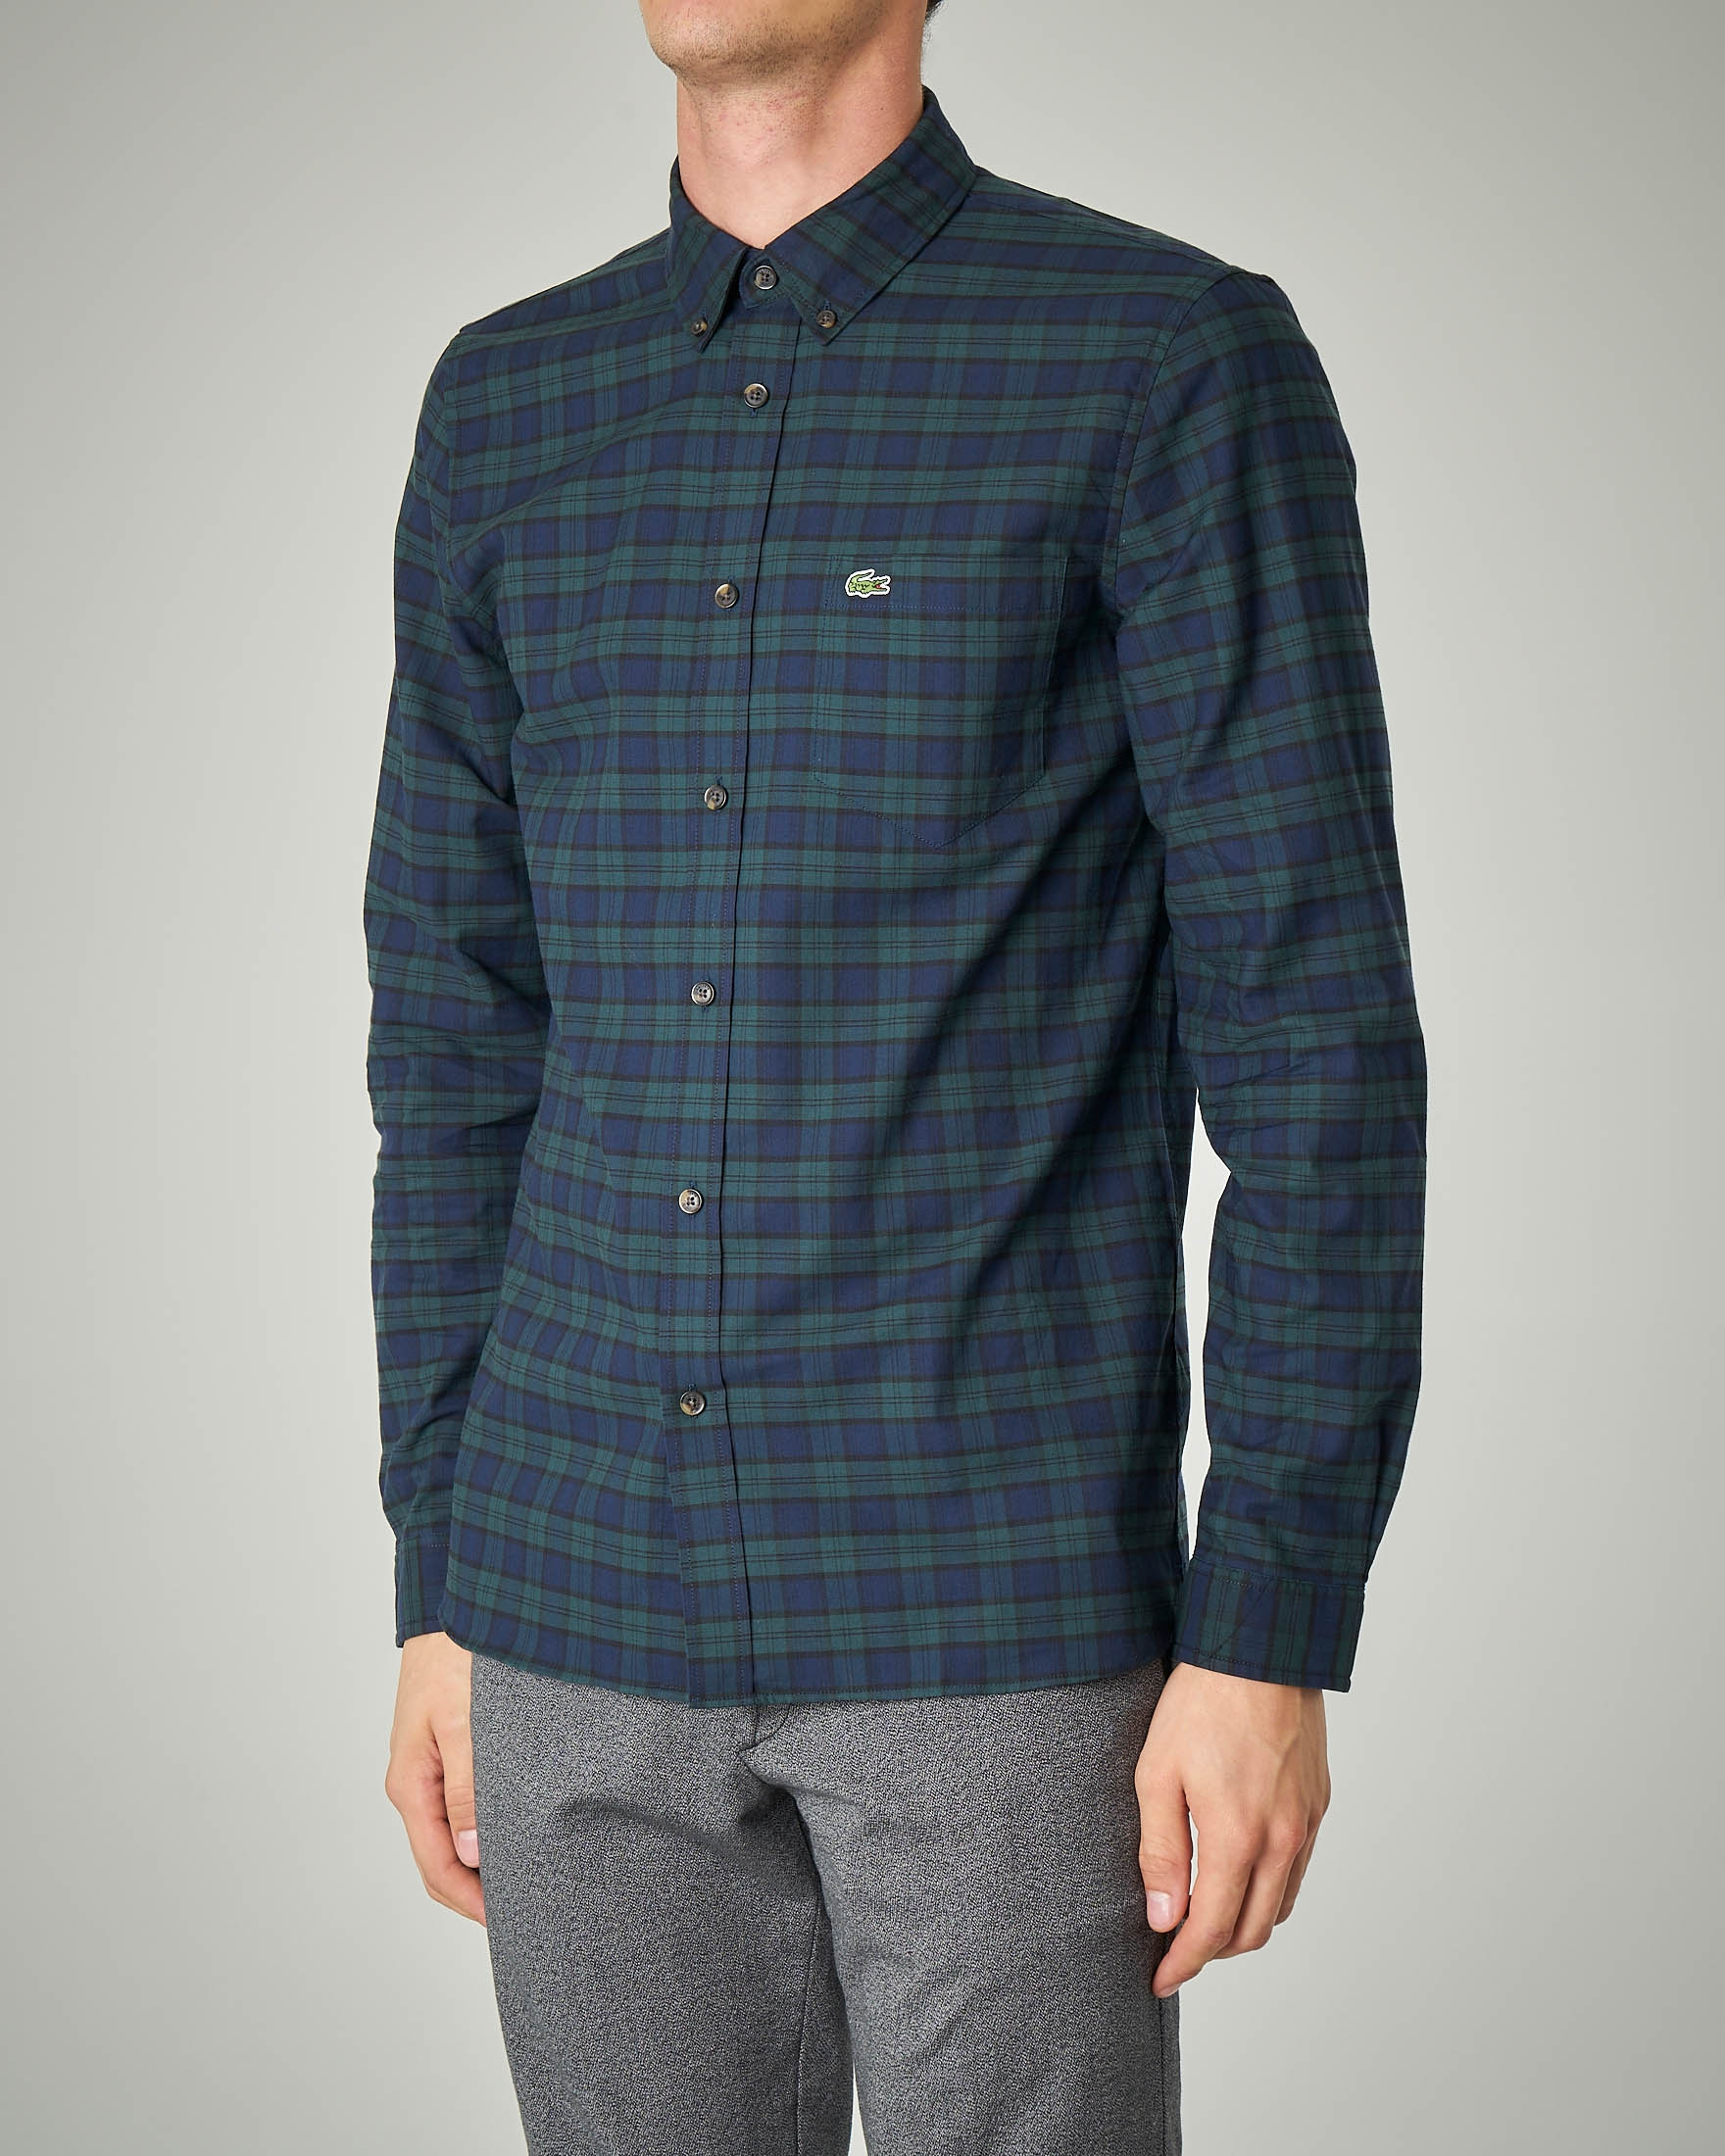 Camicia a quadri blu e verde button down con taschino